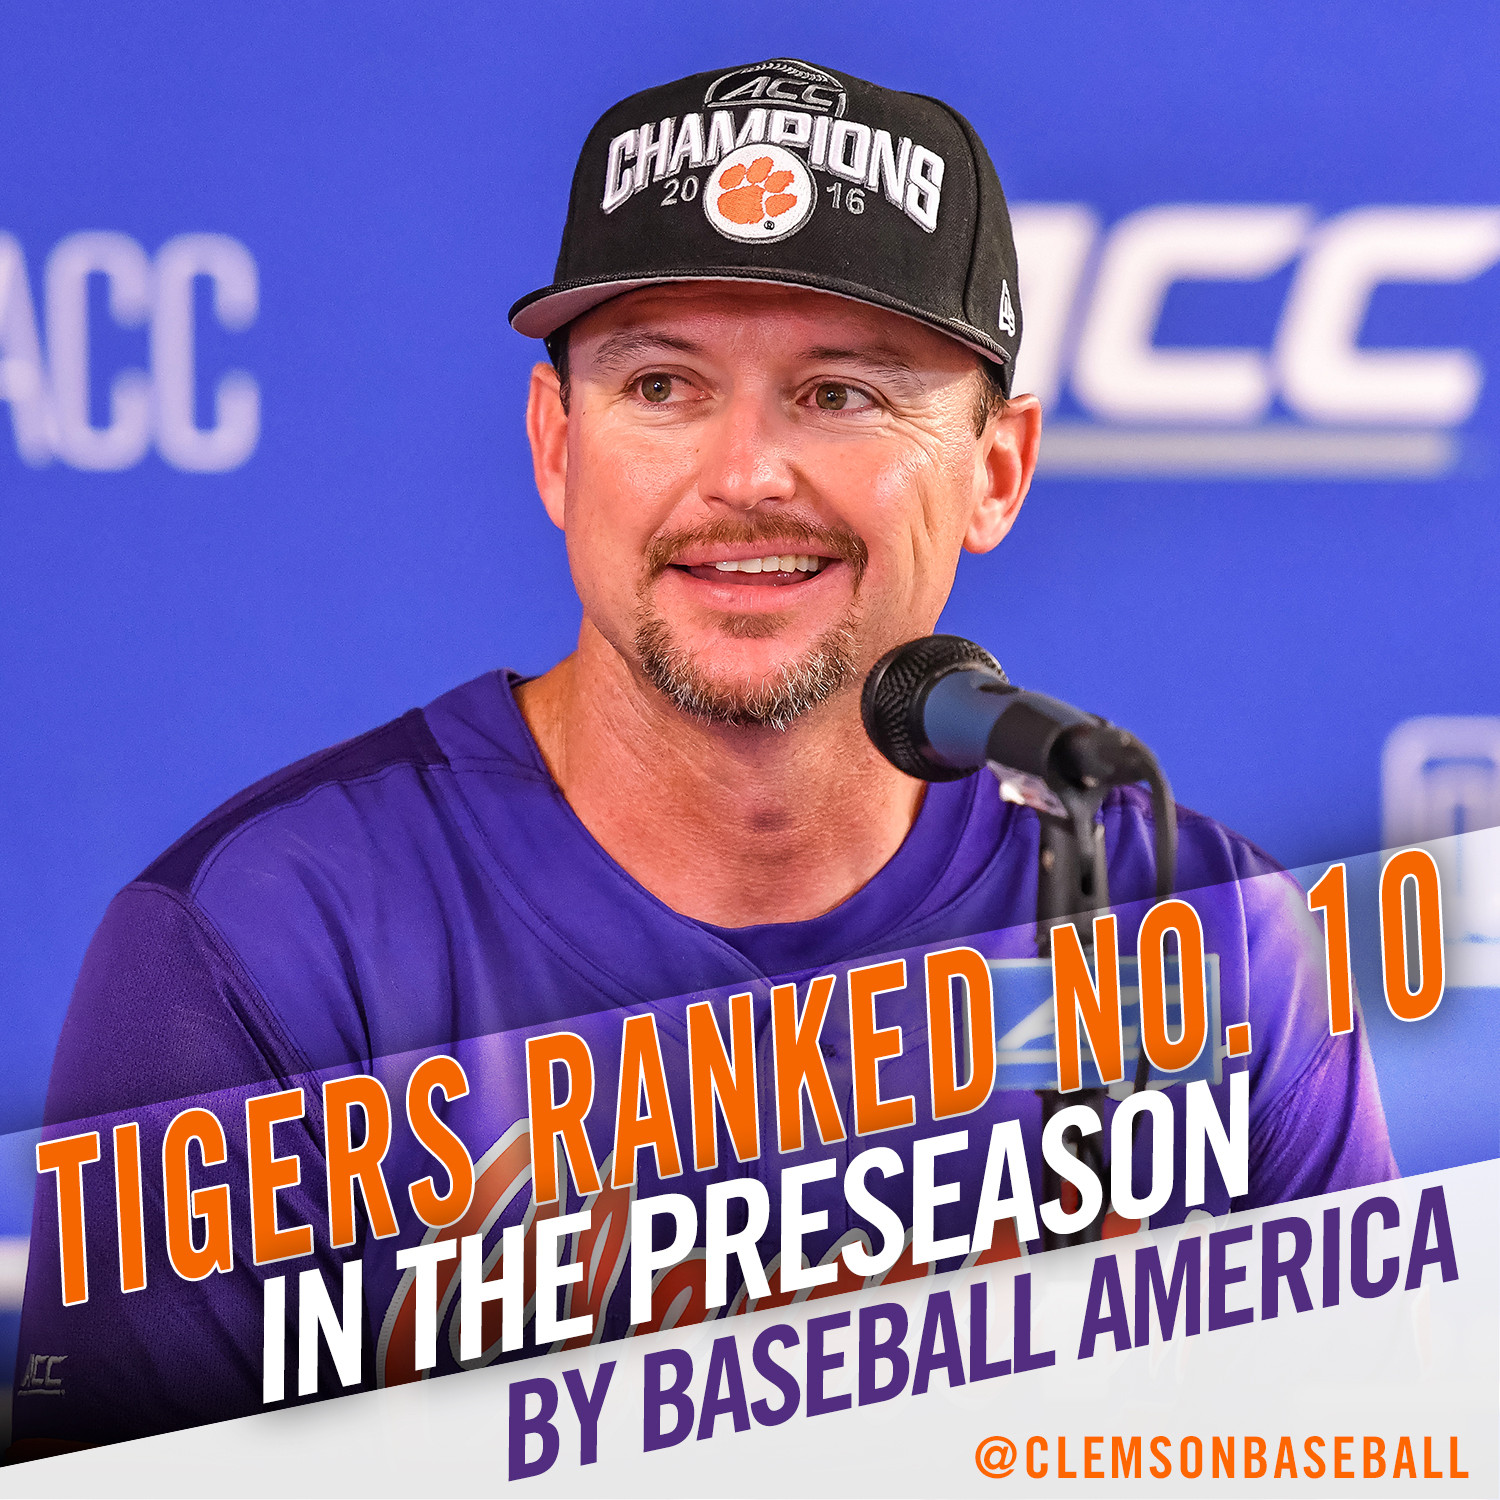 Tigers No. 10 in BA Ranking